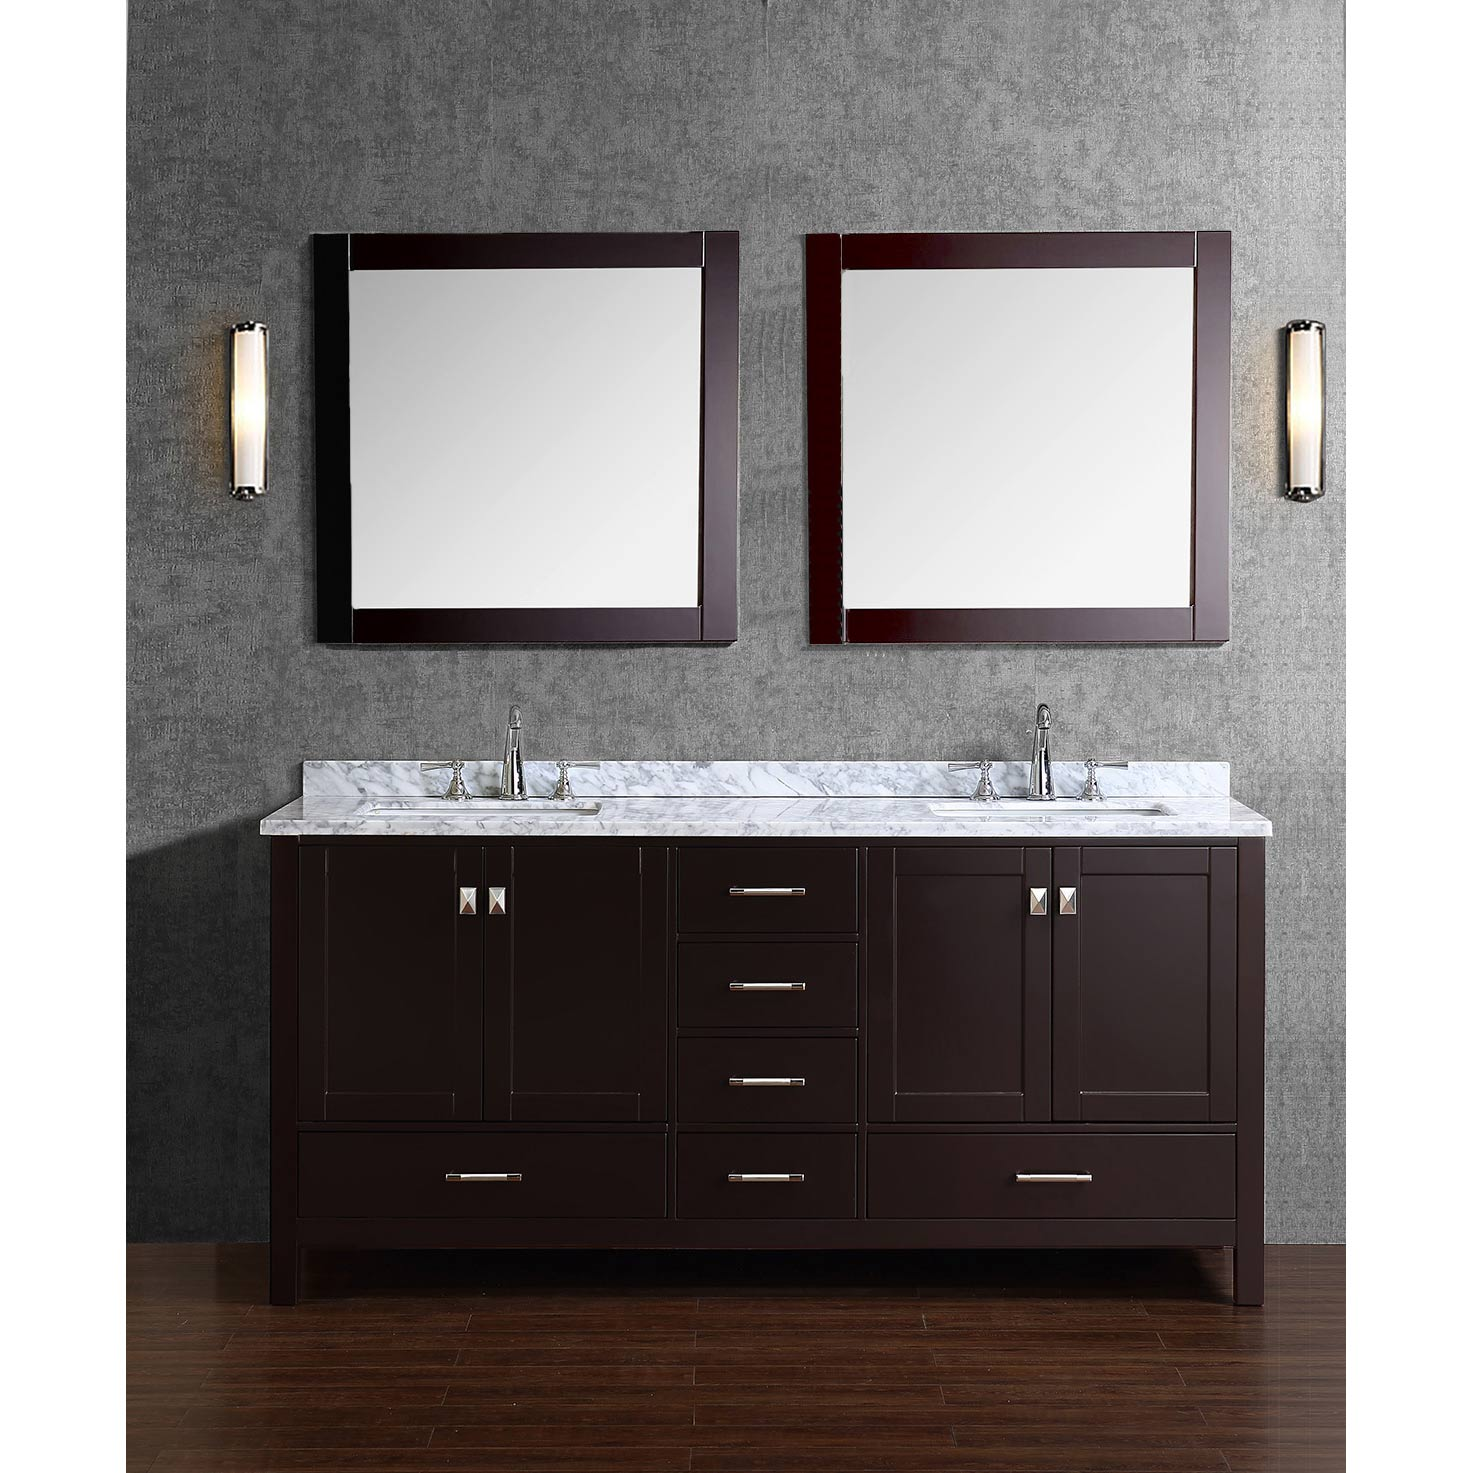 Where can i buy a bathroom vanity - Vincent 72 Solid Wood Double Bathroom Vanity In Espresso Hm 13001 72 Wmsq Esp